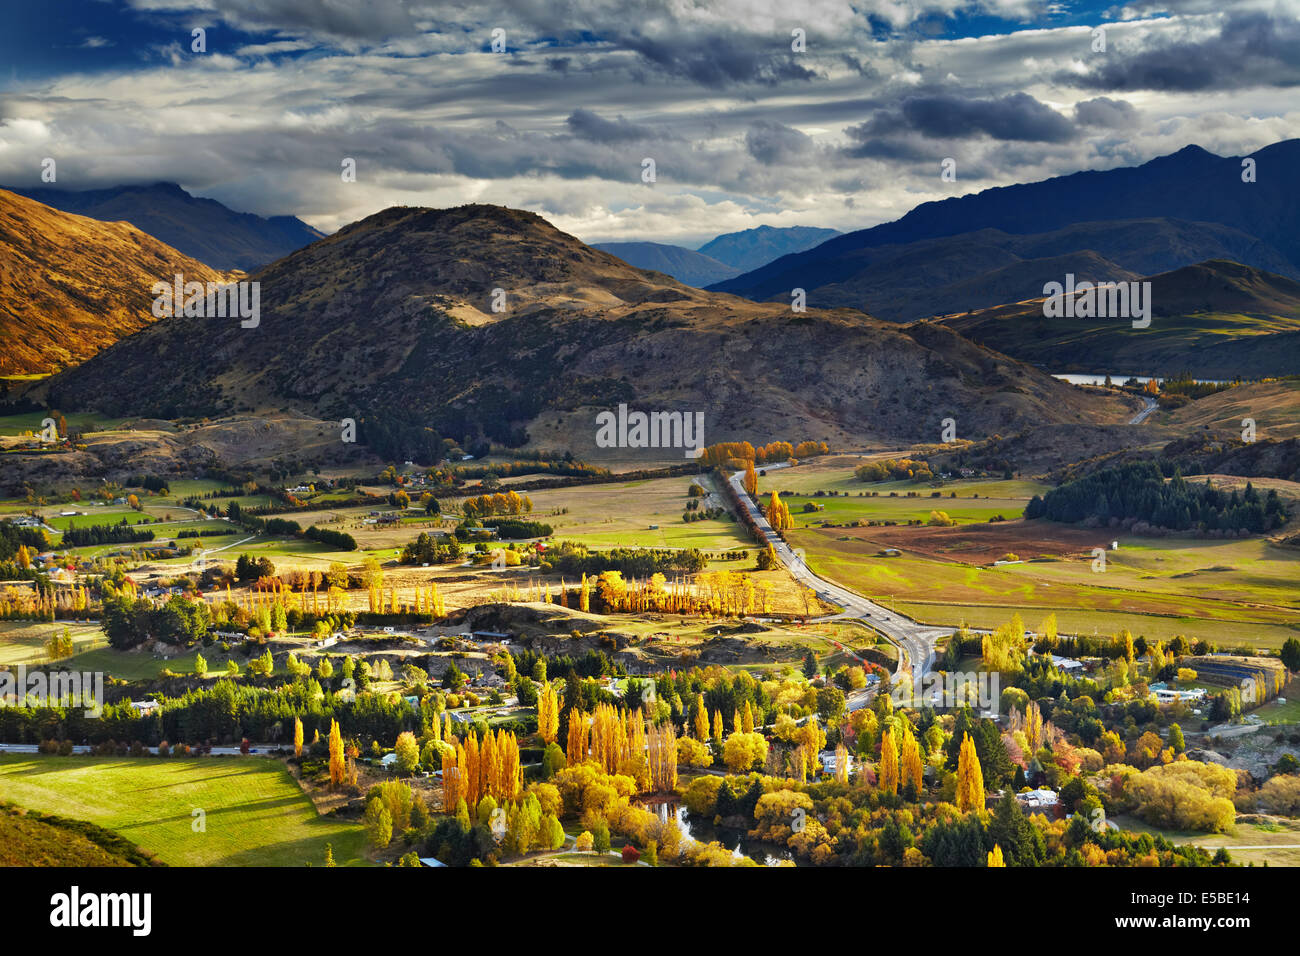 Paysage de montagne, près de Queenstown, Nouvelle-Zélande Photo Stock